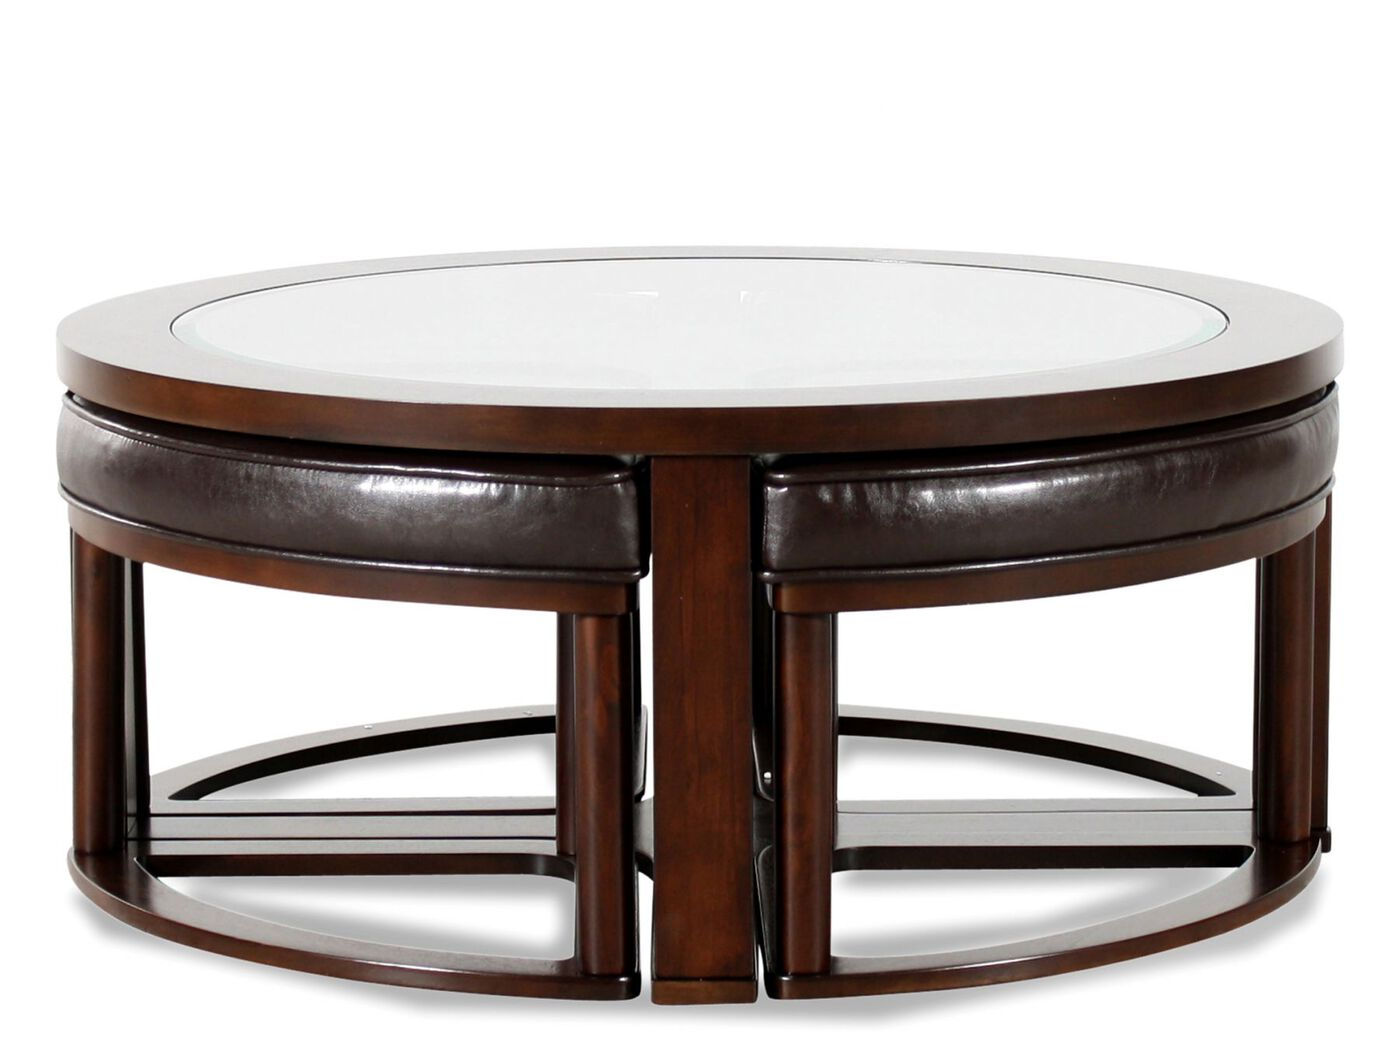 100 Lift Top Coffee Table Ashley Furniture Ashley  : ASH T4775E0478 from 45.32.79.15 size 1332 x 1000 jpeg 90kB